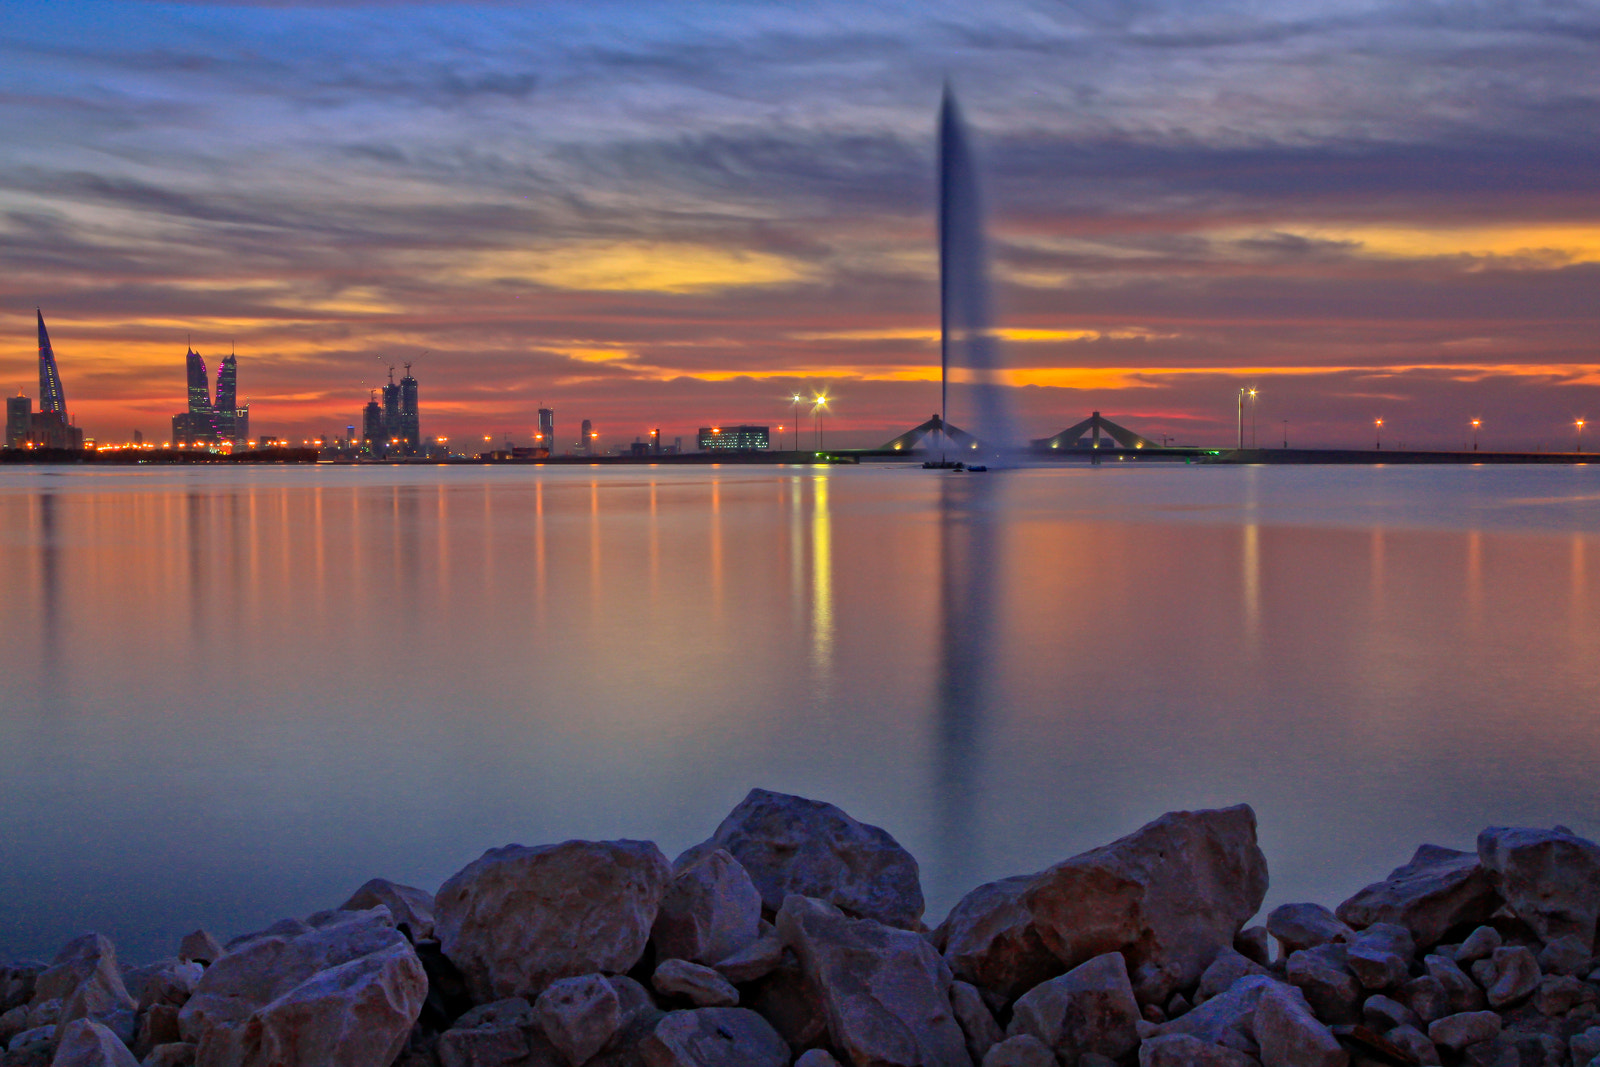 Photograph Manama City by Helminadia Ranford on 500px